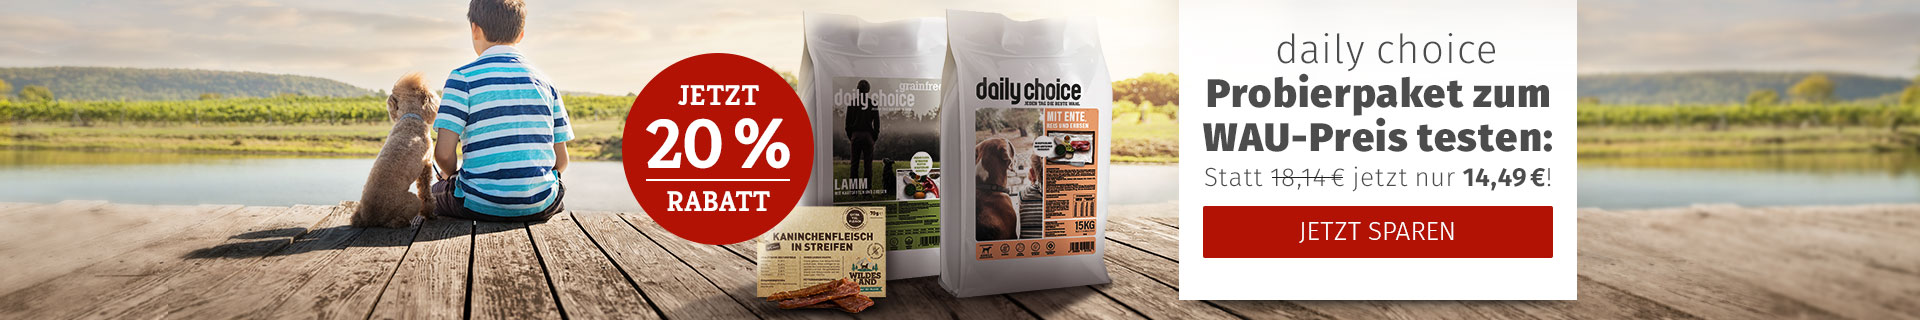 daily choice Aktion - 20% Rabatt auf Probierpaket